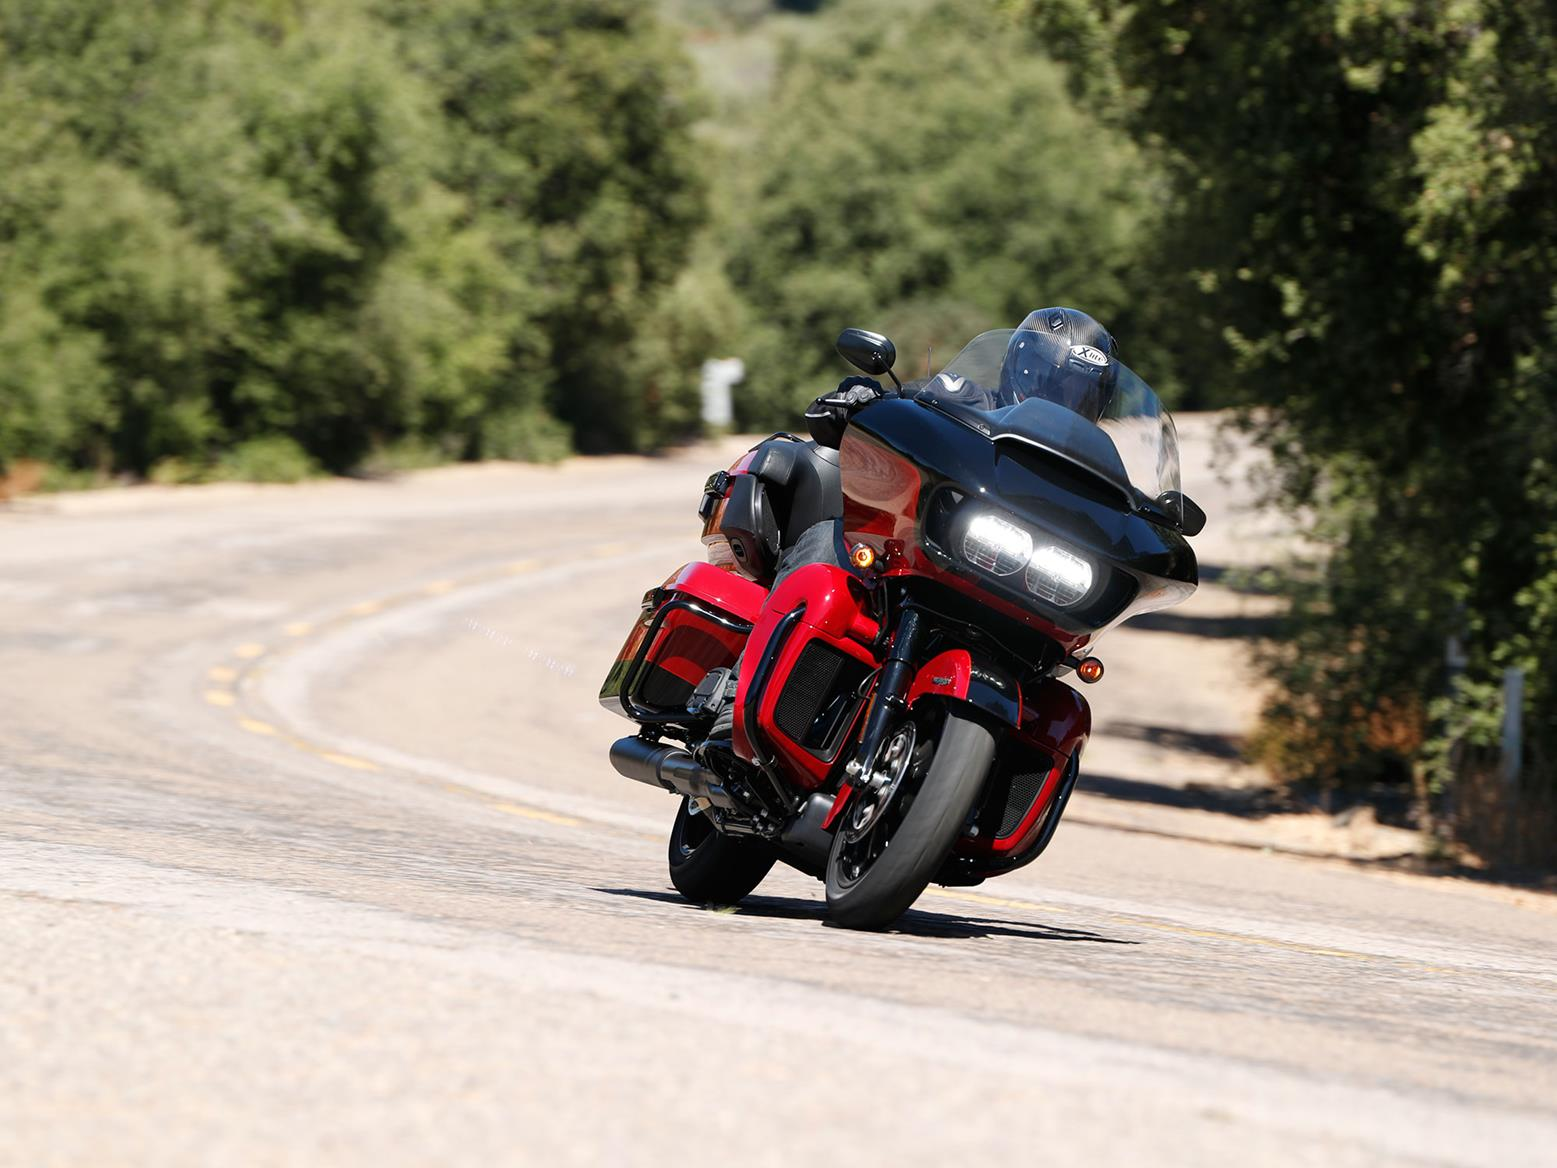 Cornering on the Harley-Davidson Road Glide Limited